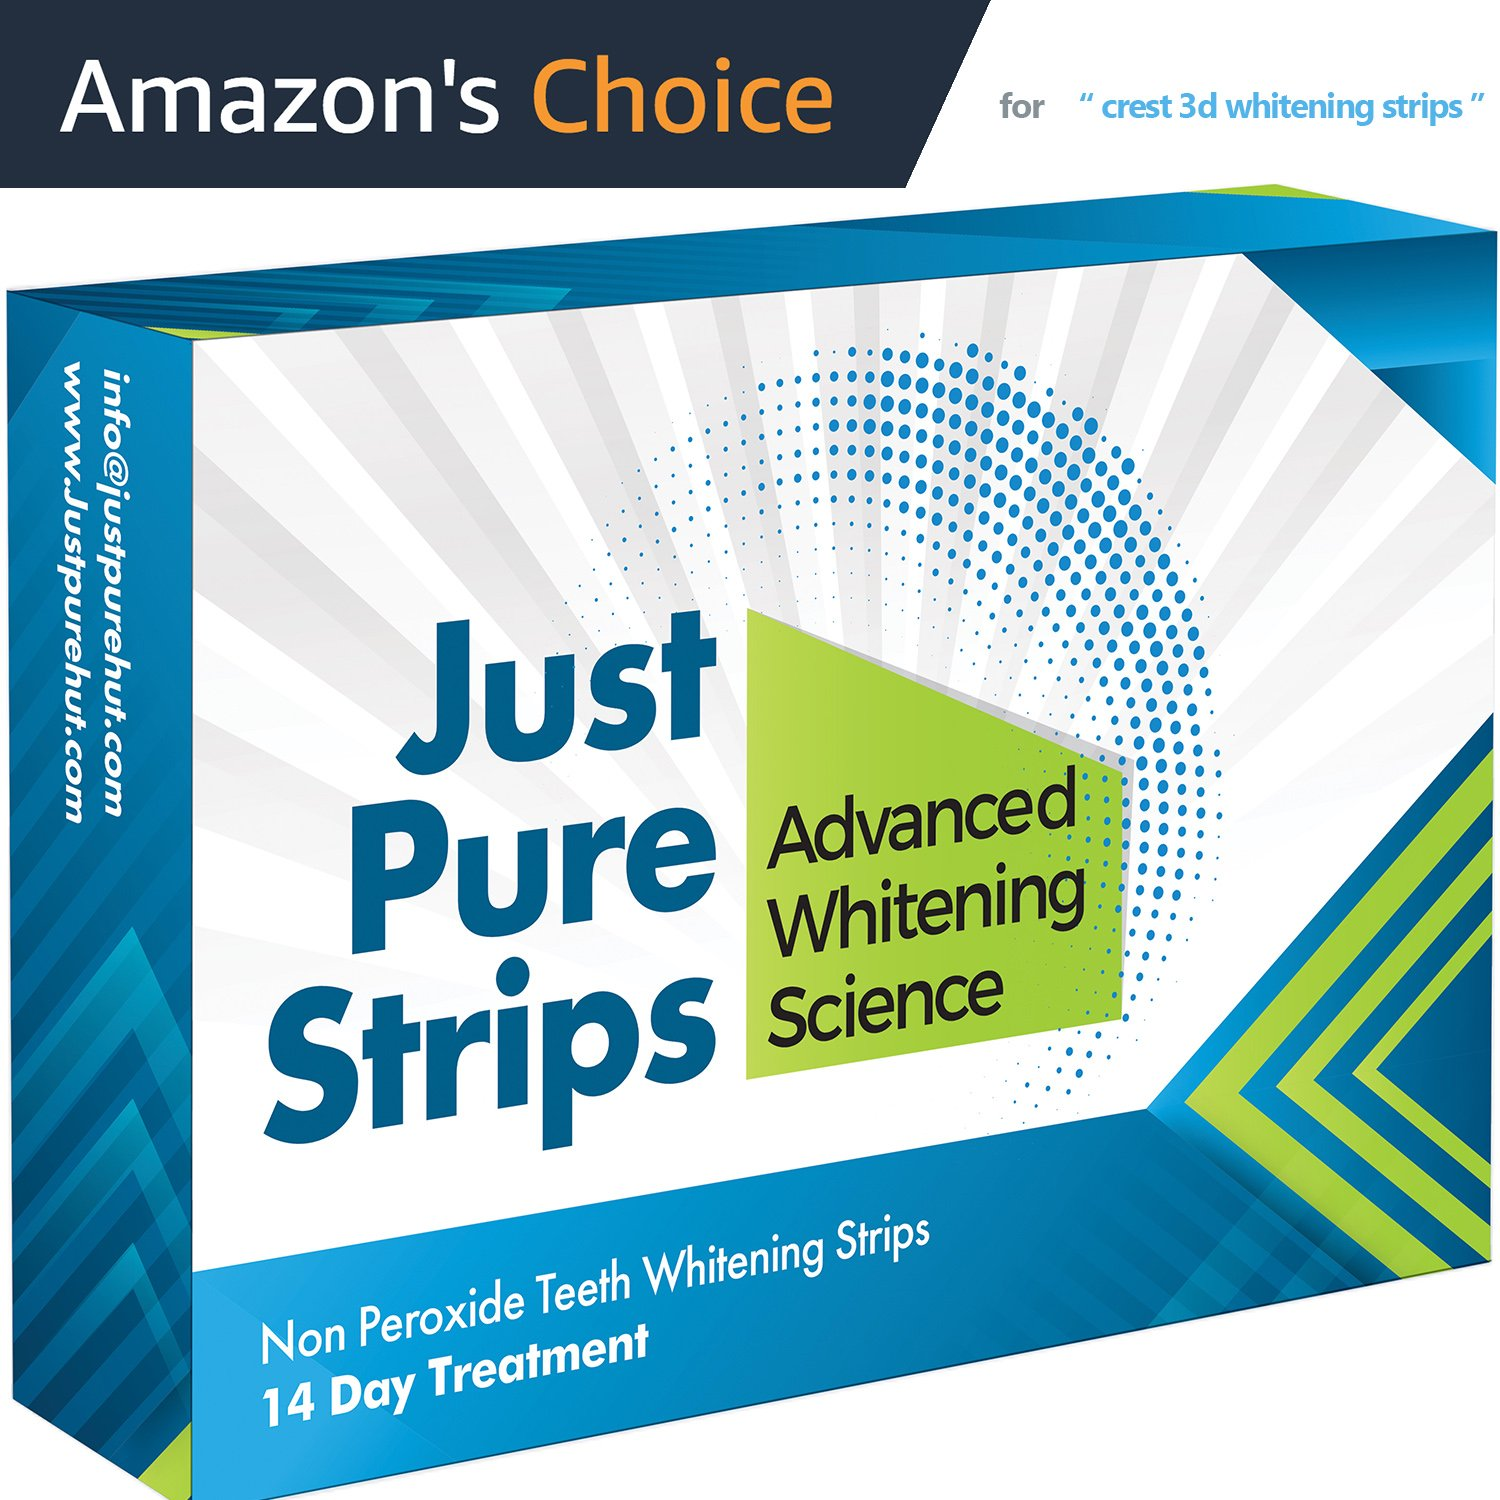 Dentist Teeth Whitening Strips - Best Advanced Professional 3d Whitestrips - At Home Tooth Whitener Kit - Pack of 28 (14 day Course) - Zero Peroxide Gel Products - No Powder Syringes or Toothpaste product image